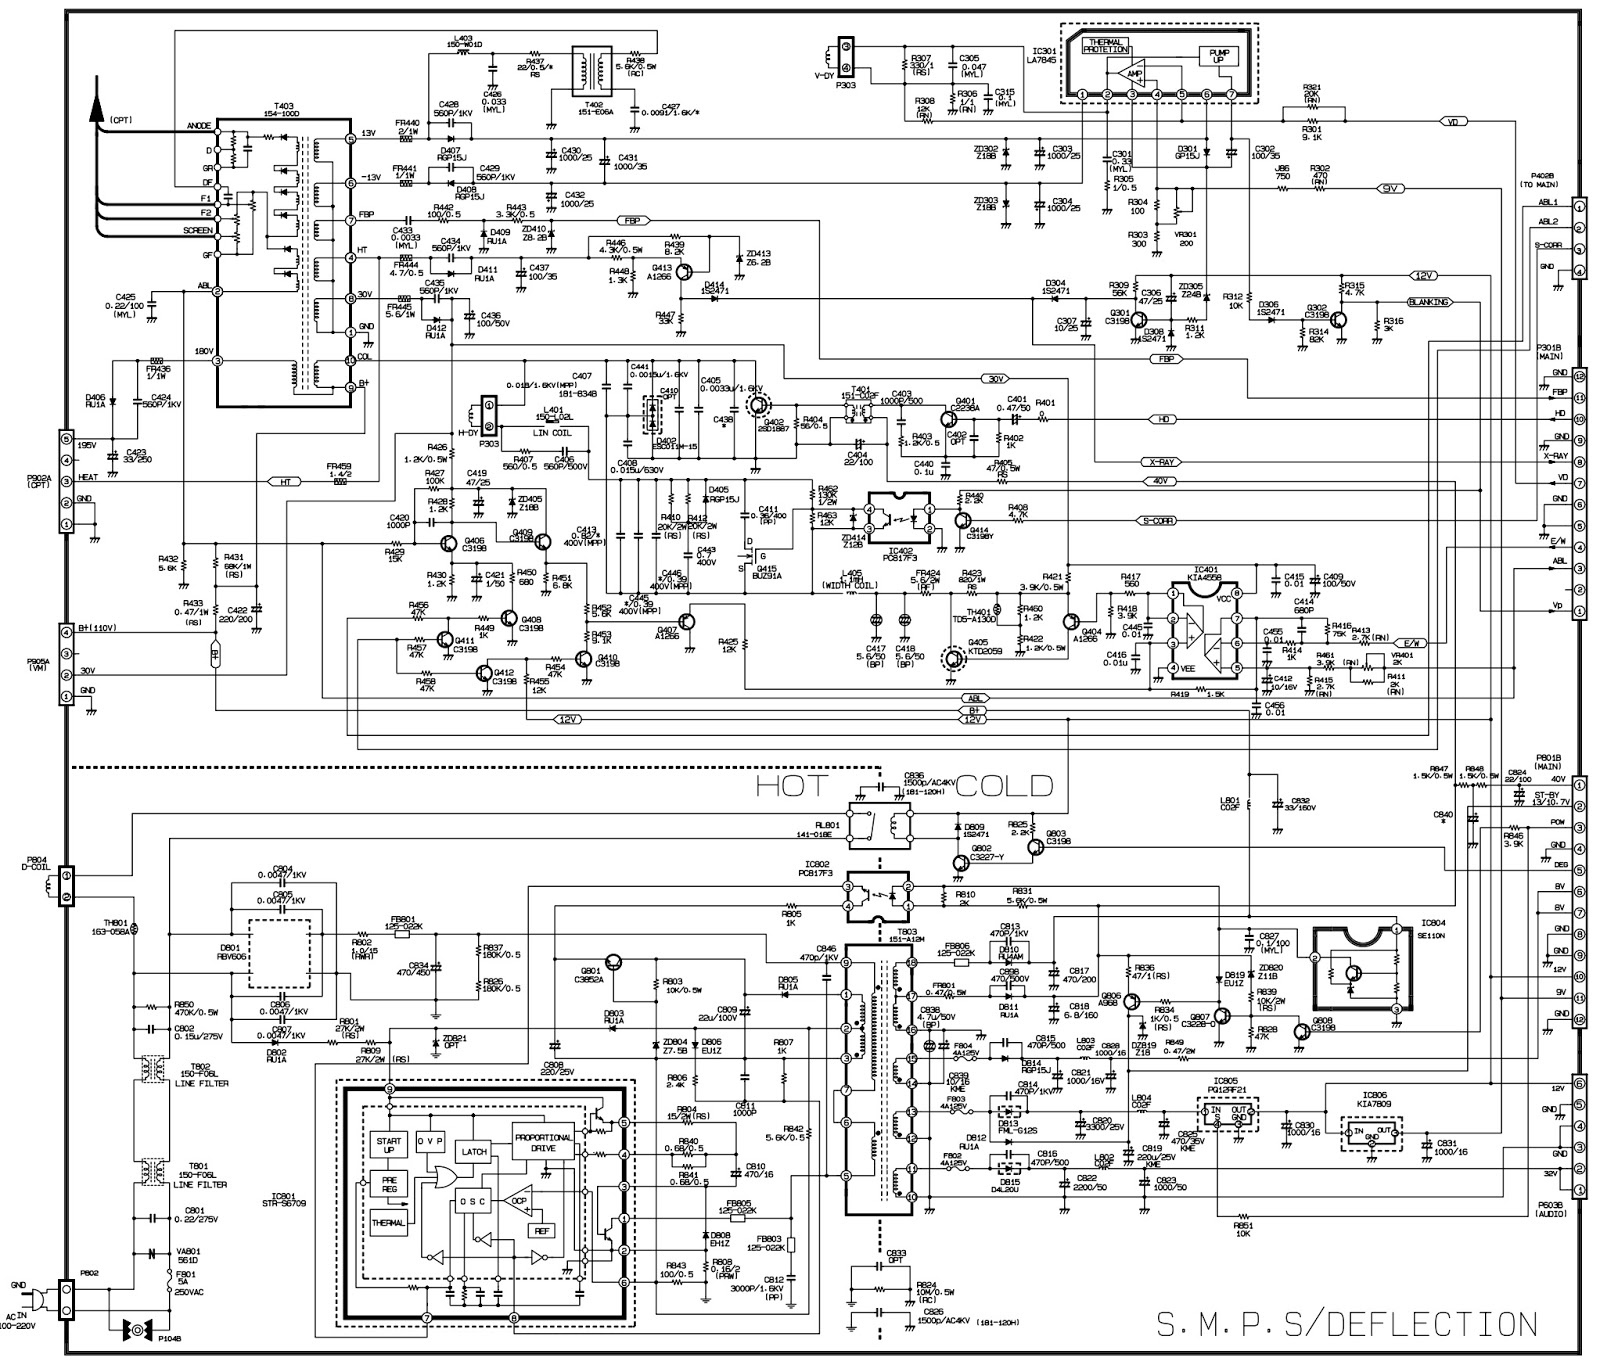 wp32a30 lg 32 inch crt tv circuit diagram schematic diagrams lcd tv problem troubleshooting crt tv [ 1600 x 1365 Pixel ]